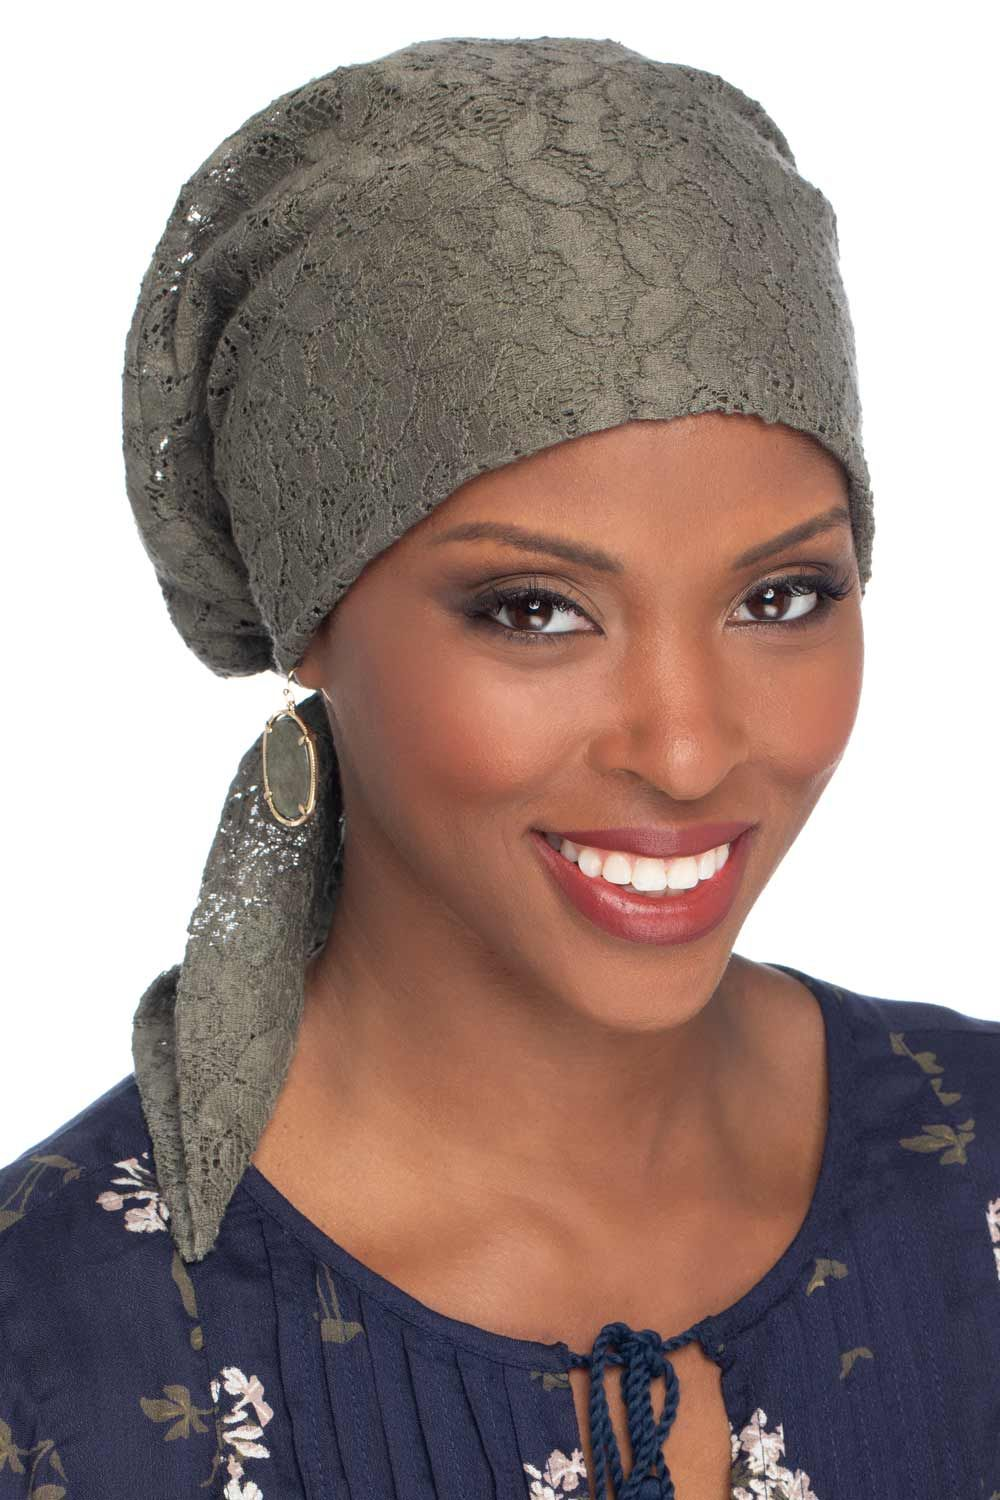 Lace Easy to Tie Scarf Cap for Cancer Patients